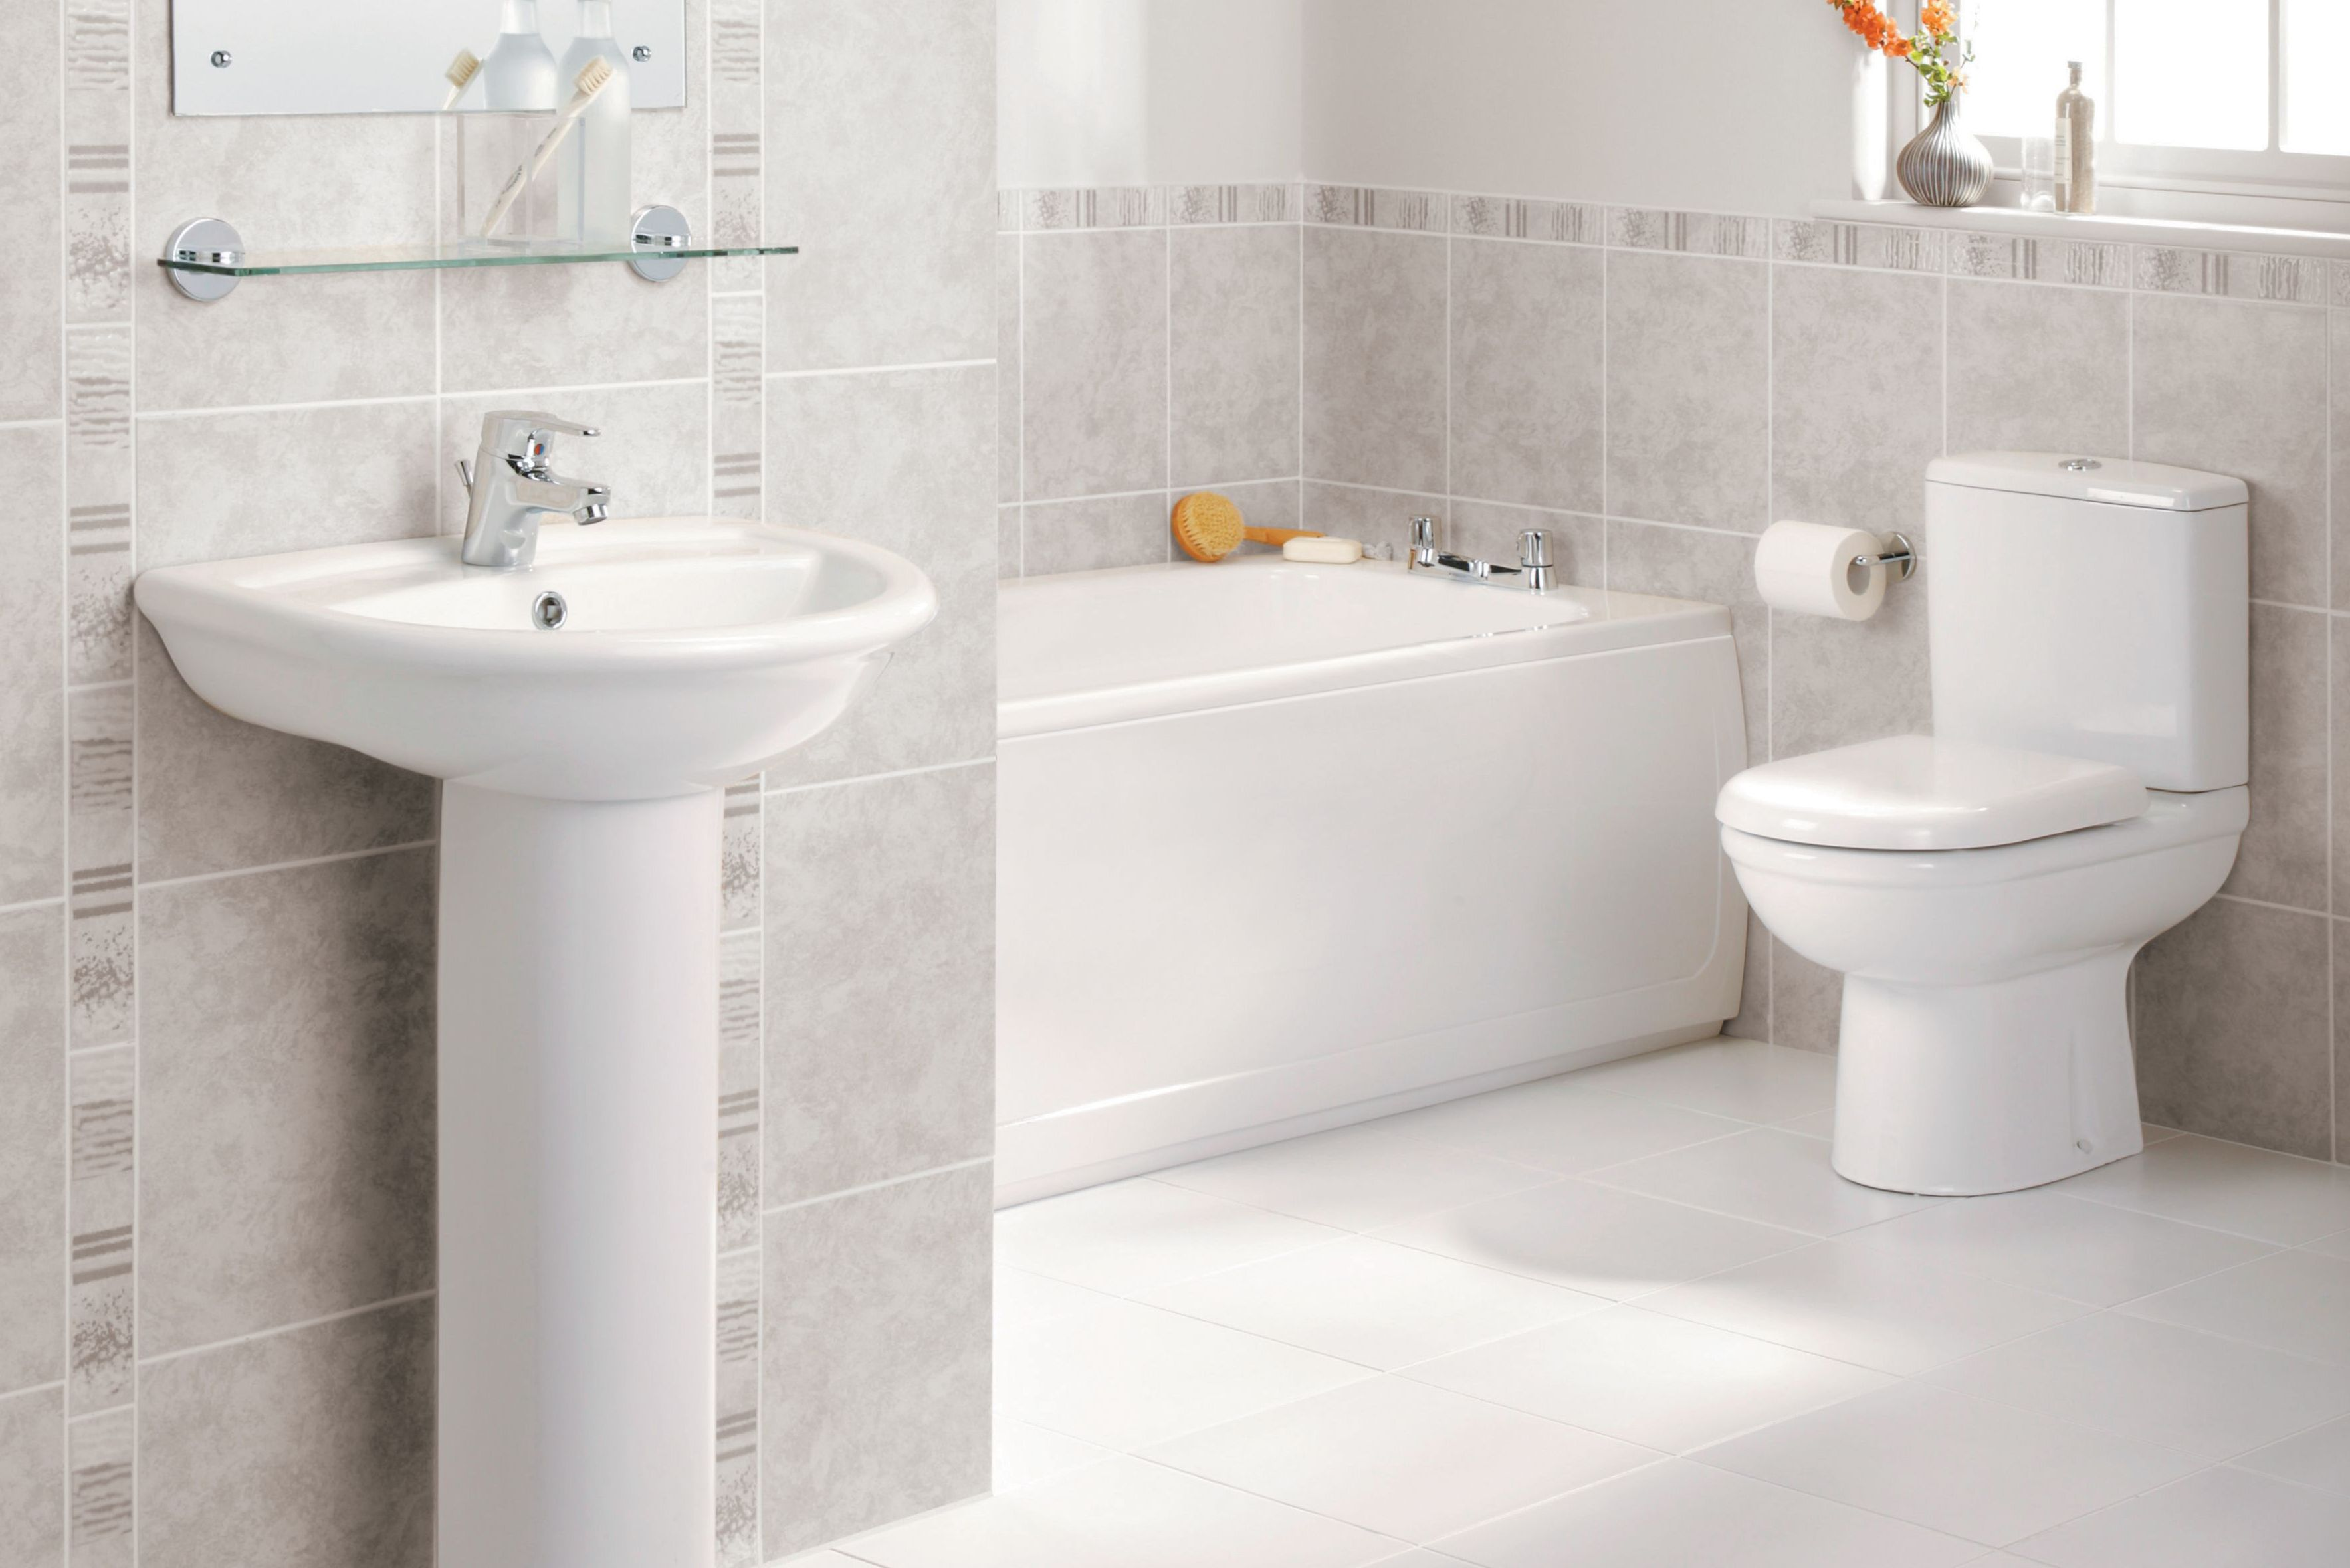 Sandringham bathroom suite